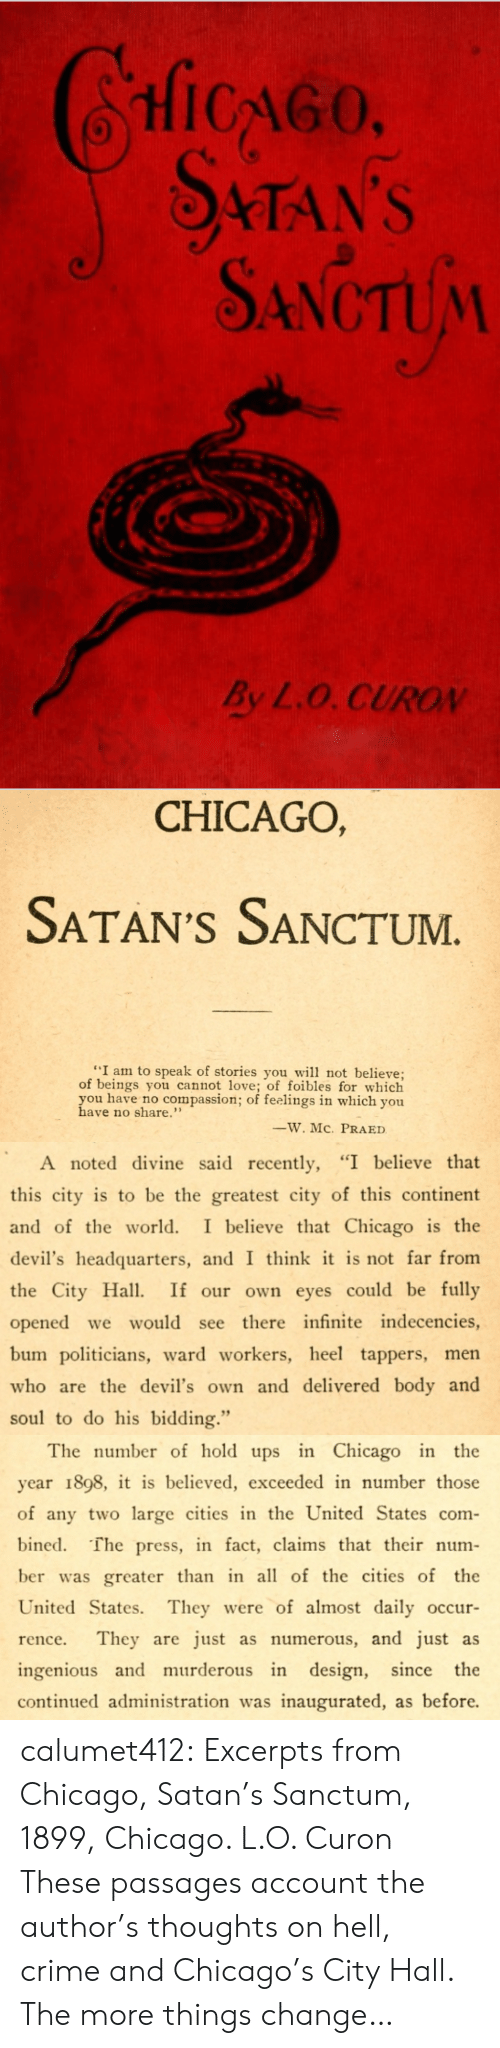 "Chicago, Crime, and Love: HicGo  STAN'S  SANCTUM  By L.O. CUROV   CHICAGO,  SATAN'S SANCTUM  ""I am to speak of stories you w not believe;  of beings you cannot love; of foibles for which  you have no compassion; of feelings in which you  have no share.""  ーW.MC.  PRA ED   A noted divine said recently, ""I believe that  this city is to be the greatest city of this continent  and of the world. I believe that Chicago is the  devil's headquarters, and I think it is not far from  the City Ha If our own eyes could be fully  opened we would see there infinite indecencies,  bum politicians, ward workers, heel tappers, men  who are the devil's own and delivered body and  soul to do his bidding.""   The number of hold ups in Chicago in the  year 1898, it is believed, exceeded in number those  of any two large cities in the United States com-  bined. The press, in fact, claims that their num-  ber was greater than in all of the cities of the  United States. They were of almost daily occur  rence. They are just as numerous, and just as  ingenious and murderous in design, since the  continued administration was inaugurated, as before. calumet412:  Excerpts from Chicago, Satan's Sanctum, 1899, Chicago. L.O. Curon These passages account the author's thoughts on hell, crime and Chicago's City Hall. The more things change…"